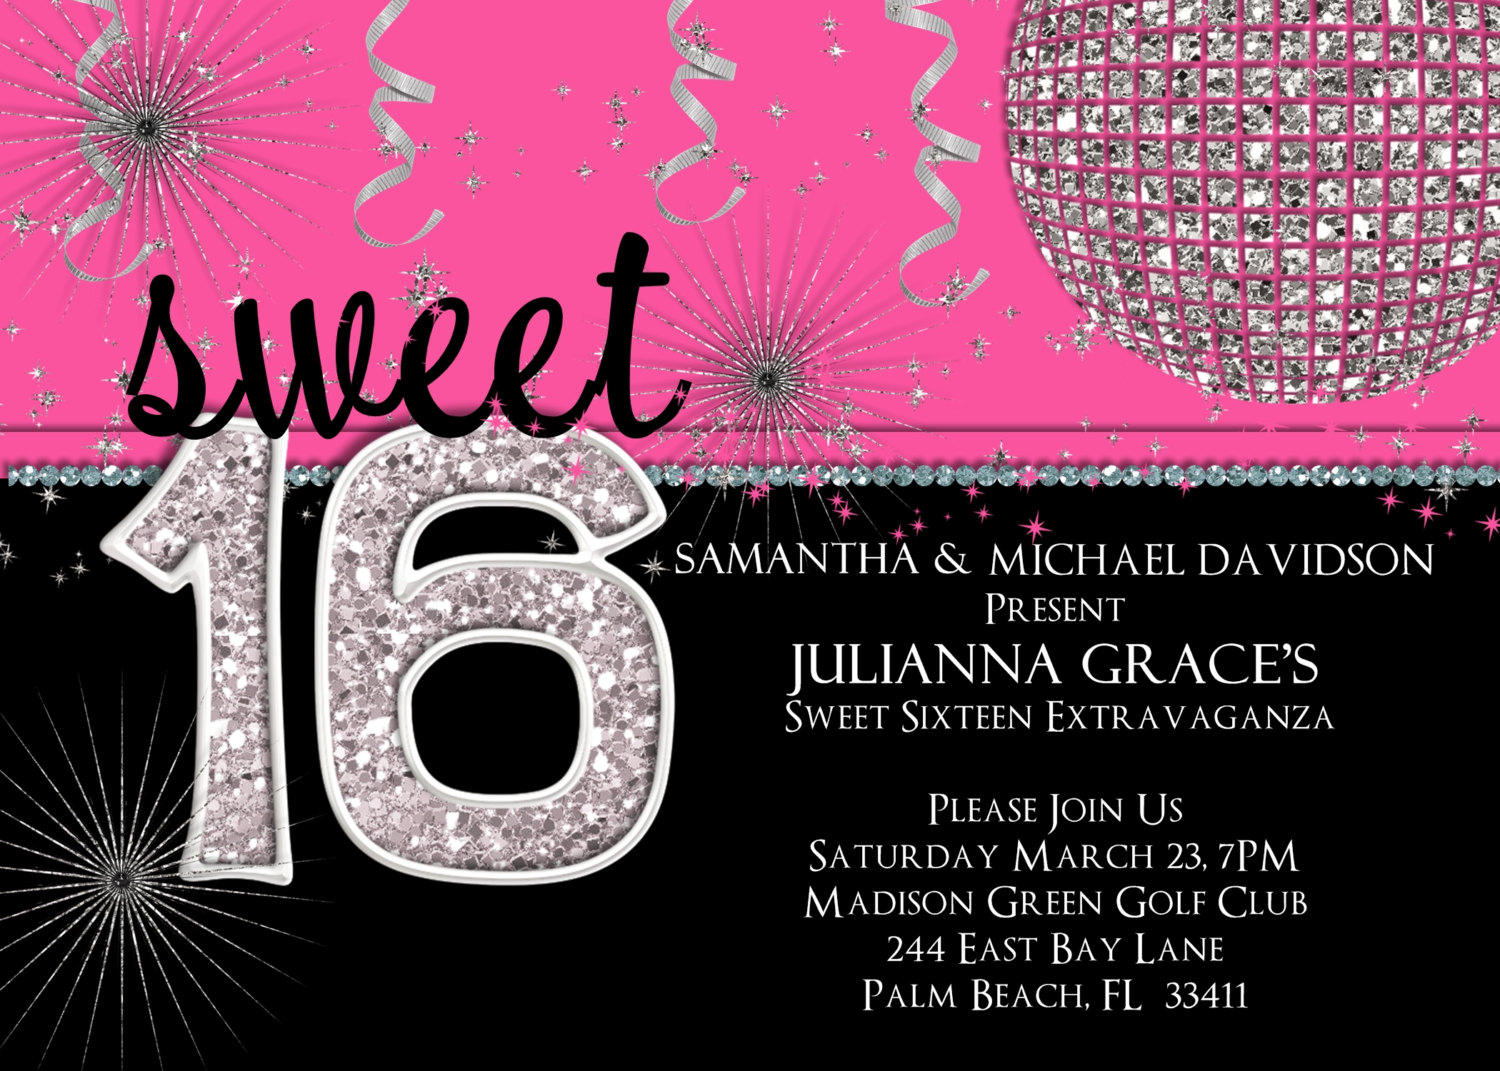 16 birthday party invitation cards ; 16-birthday-invitations-for-girl-